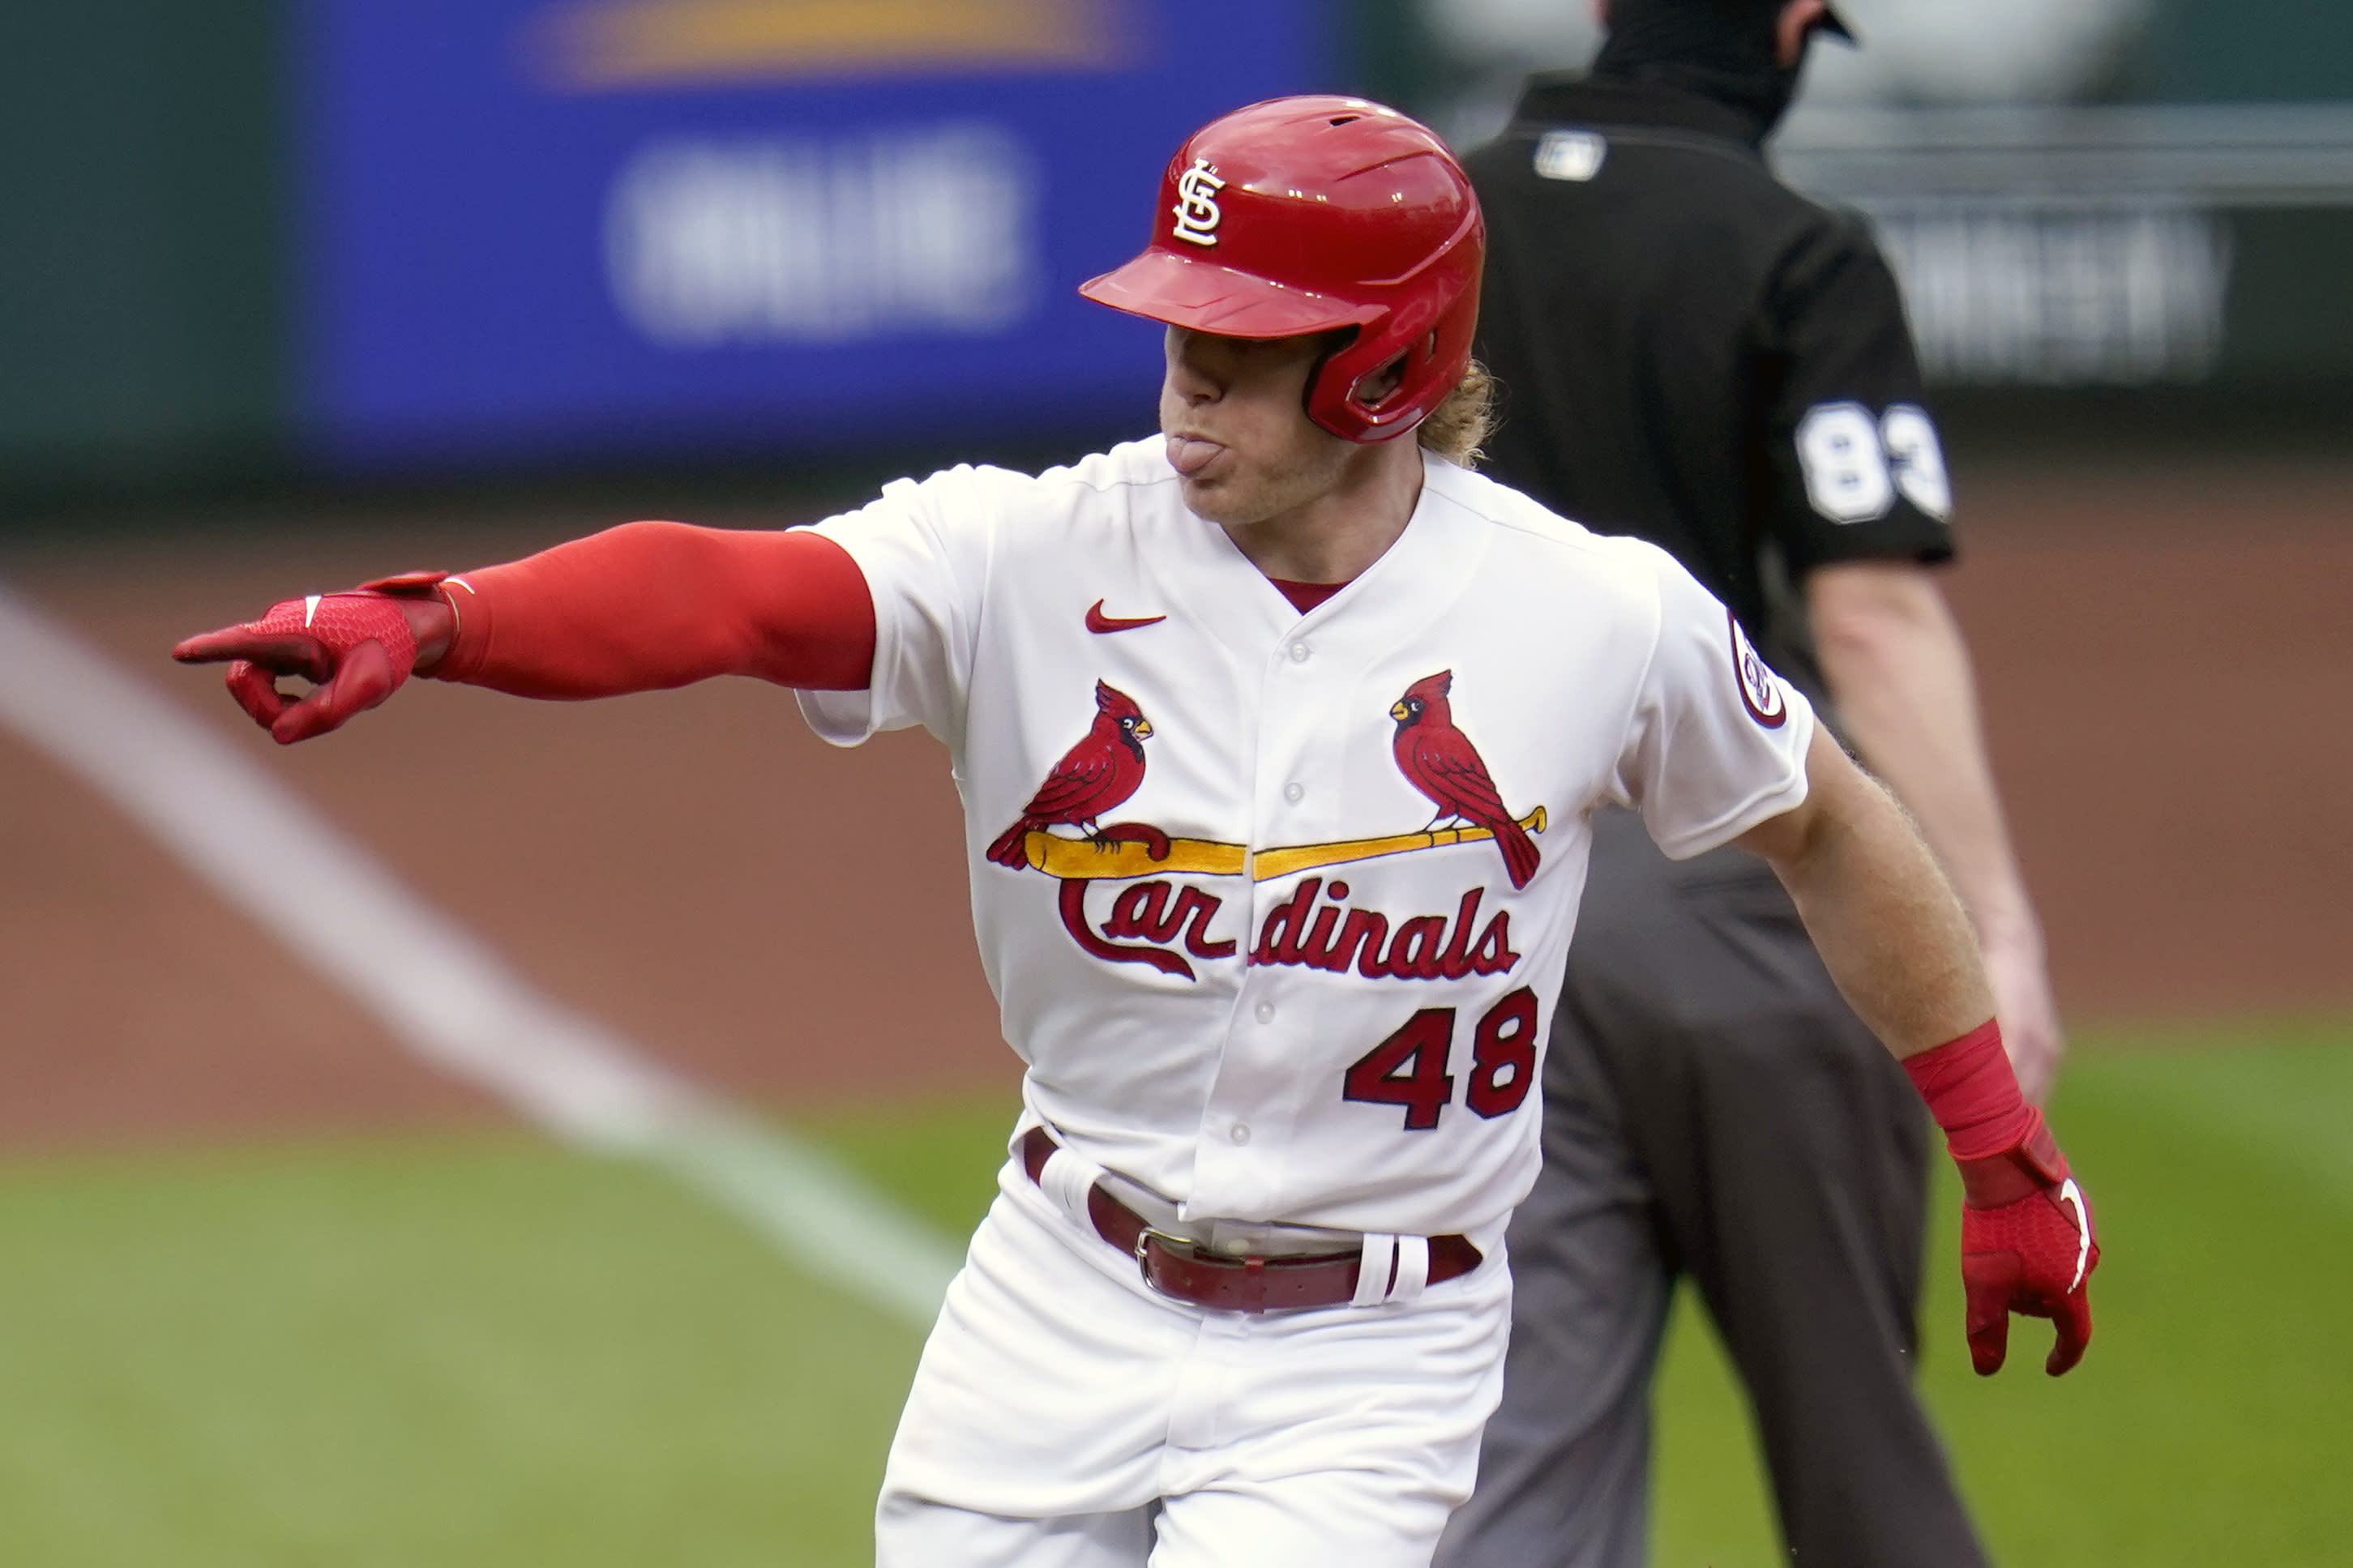 St. Louis Cardinals' Harrison Bader celebrates as he rounds the bases after hitting a solo home run during the fourth inning of a baseball game against the Milwaukee Brewers Sunday, Sept. 27, 2020, in St. Louis. (AP Photo/Jeff Roberson)